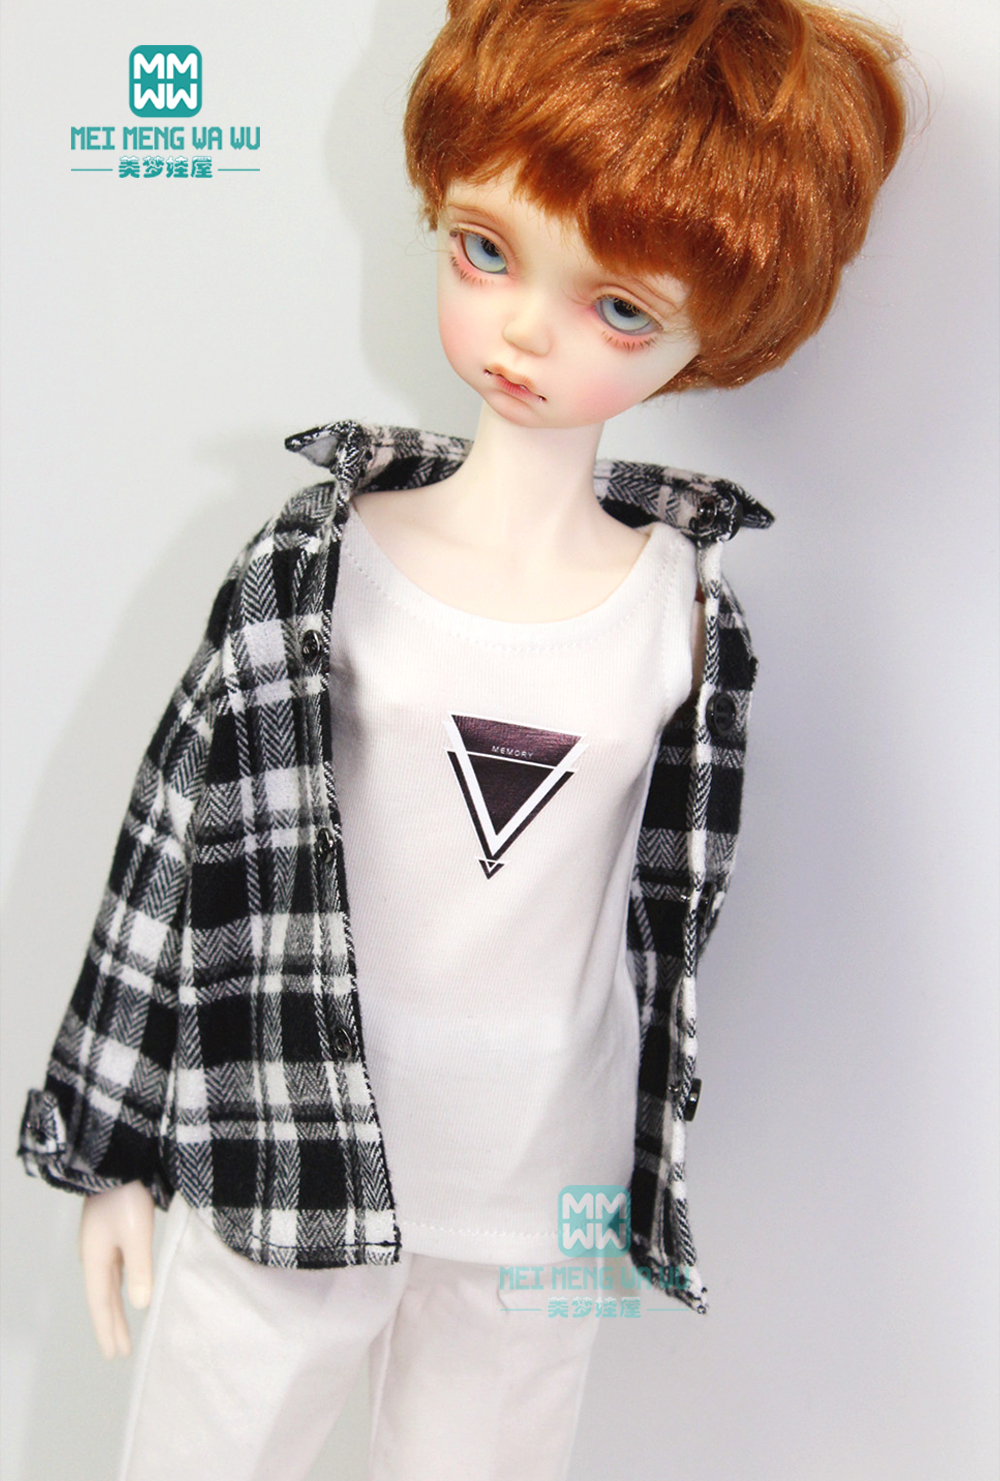 BJD Accessories Doll Clothes For 1/4 BJD YOSD Doll Fashion Vest, Plaid Shirt